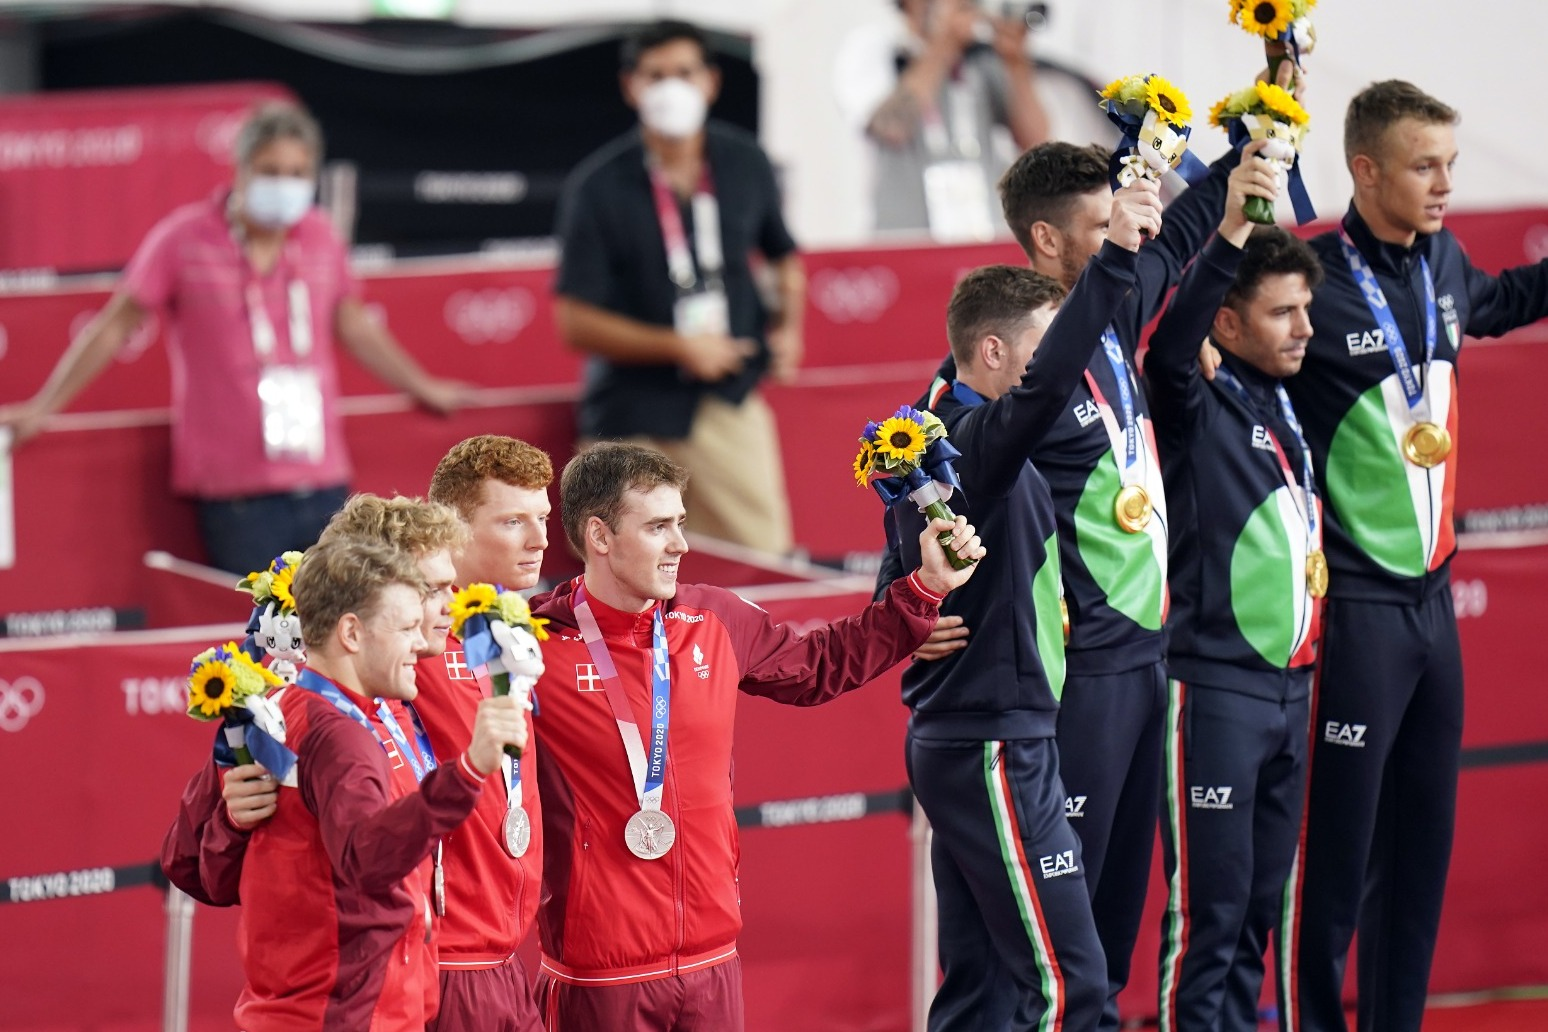 Jason Kenny concedes that Jack Carlin is carrying Team GB's sprint medal hopes